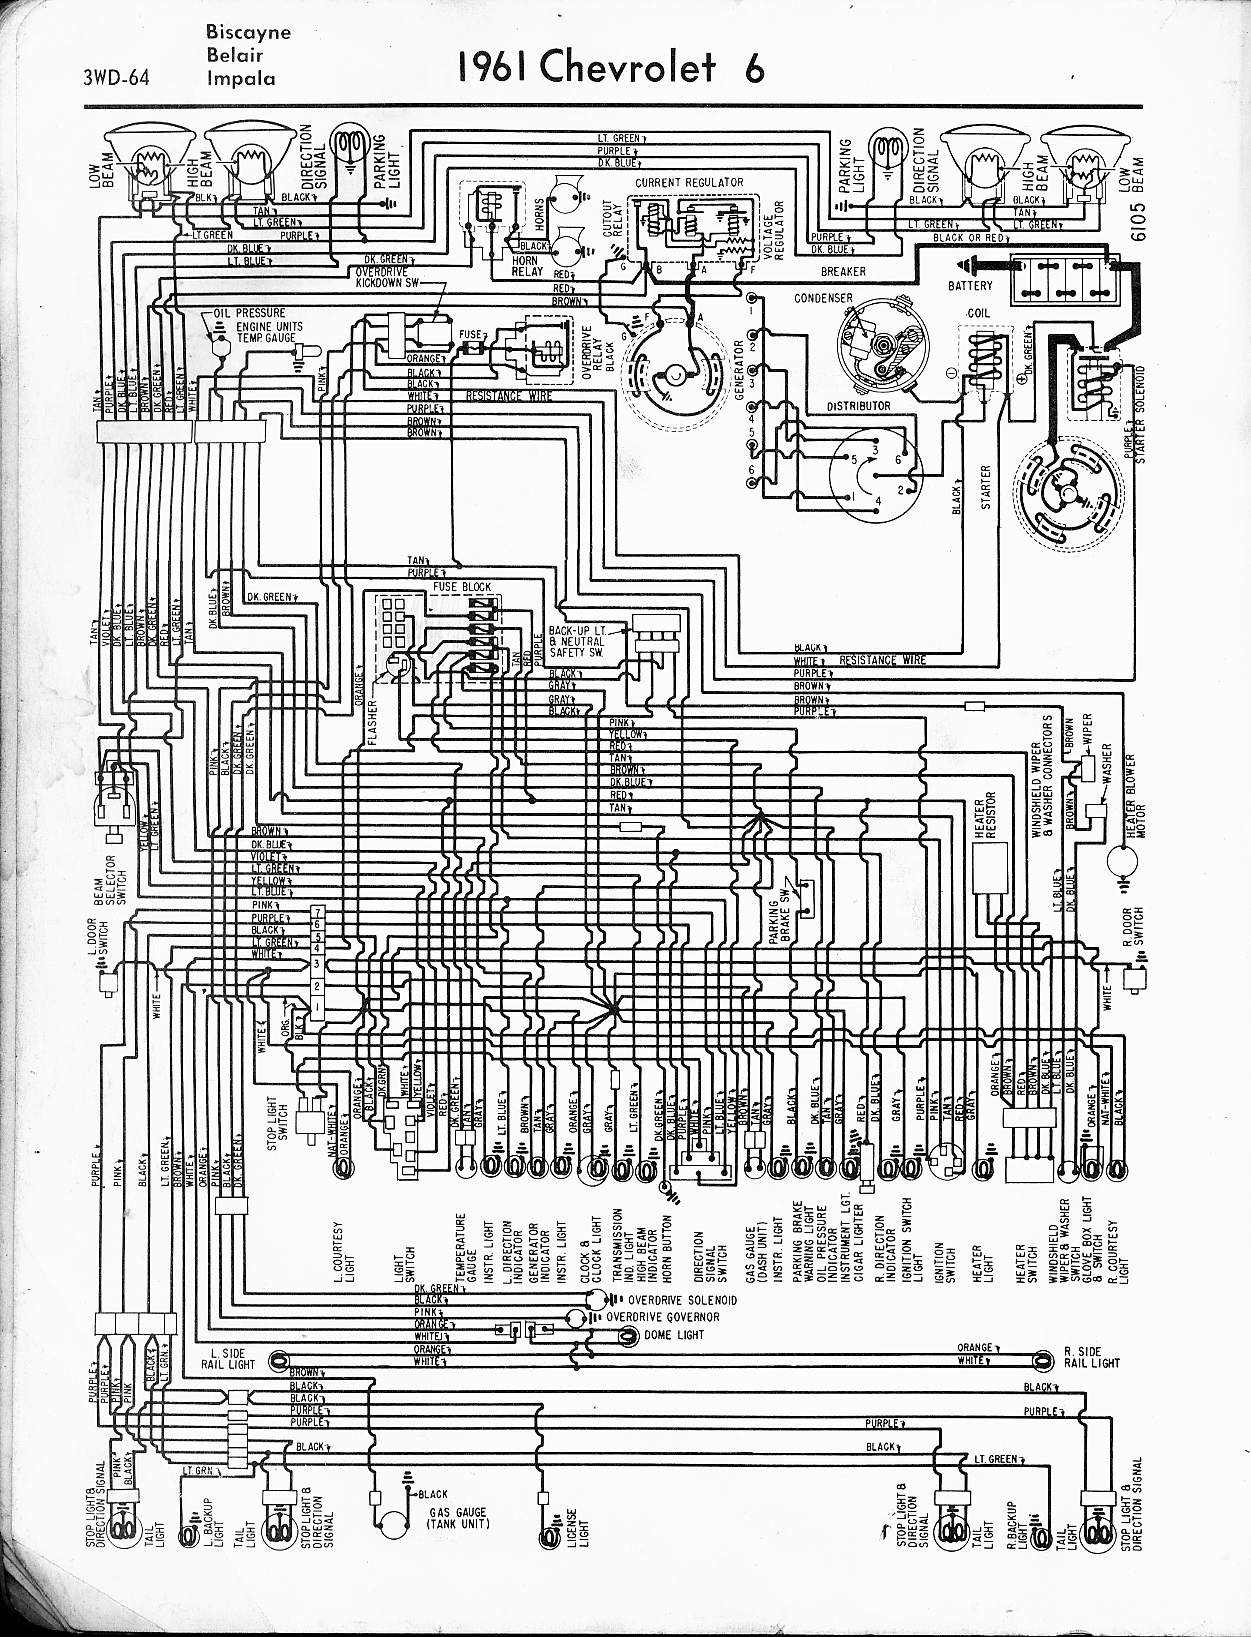 MWireChev61_3WD 064 57 65 chevy wiring diagrams 2001 chevy impala wiring harness diagram at sewacar.co